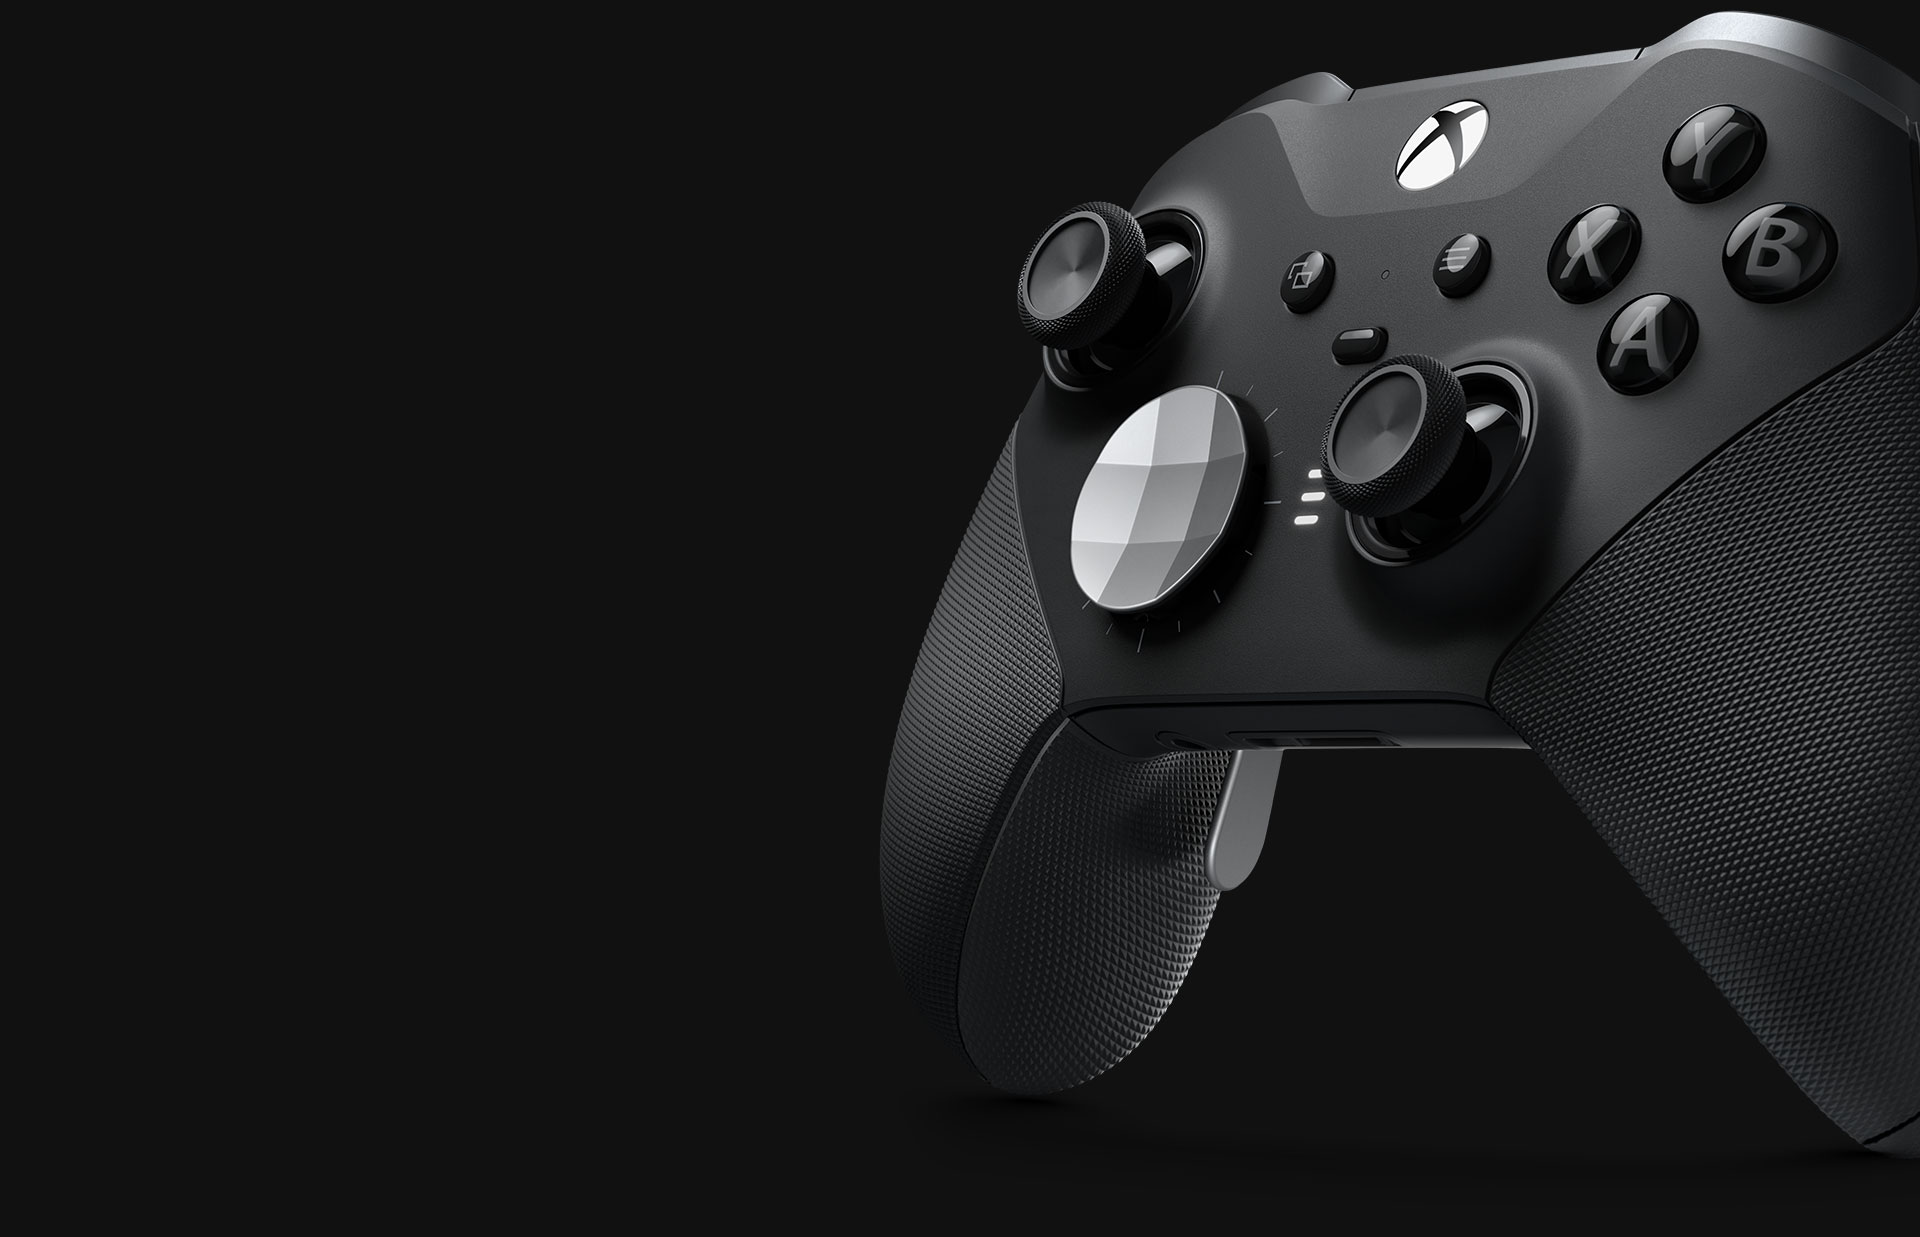 Confirmed: All Xbox One controllers work on the next Xbox screenshot